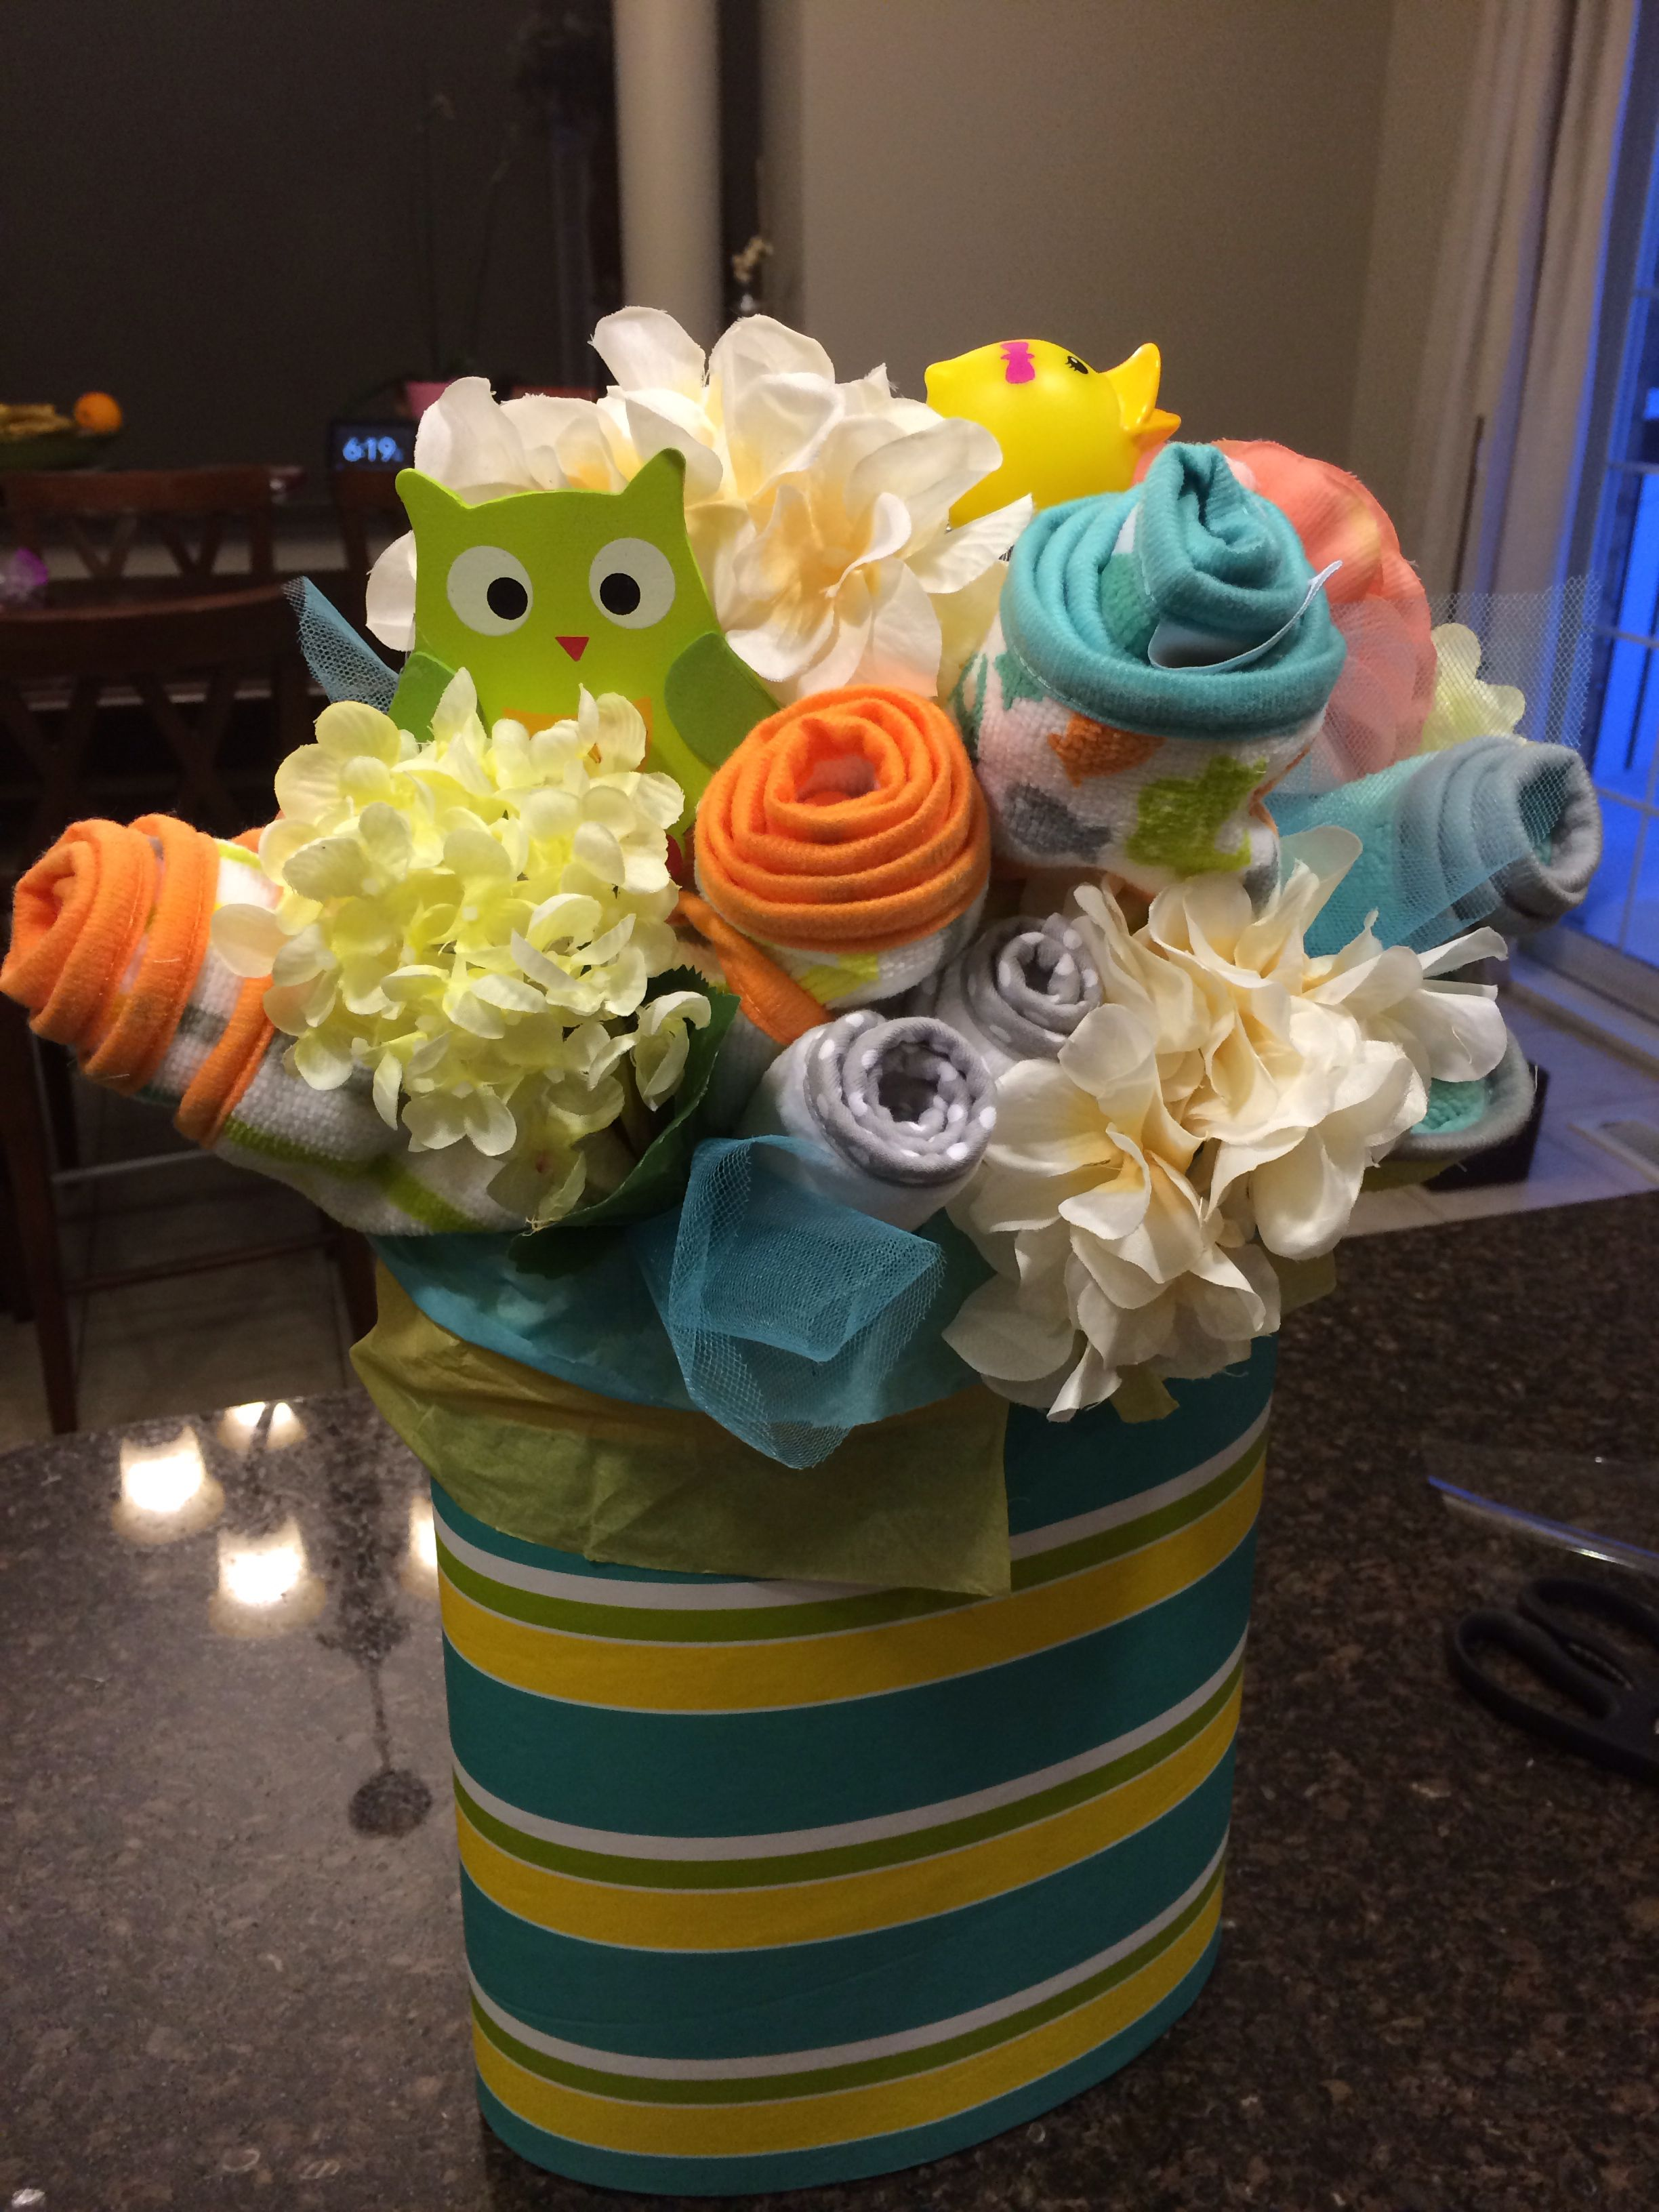 New Baby bouquet!!